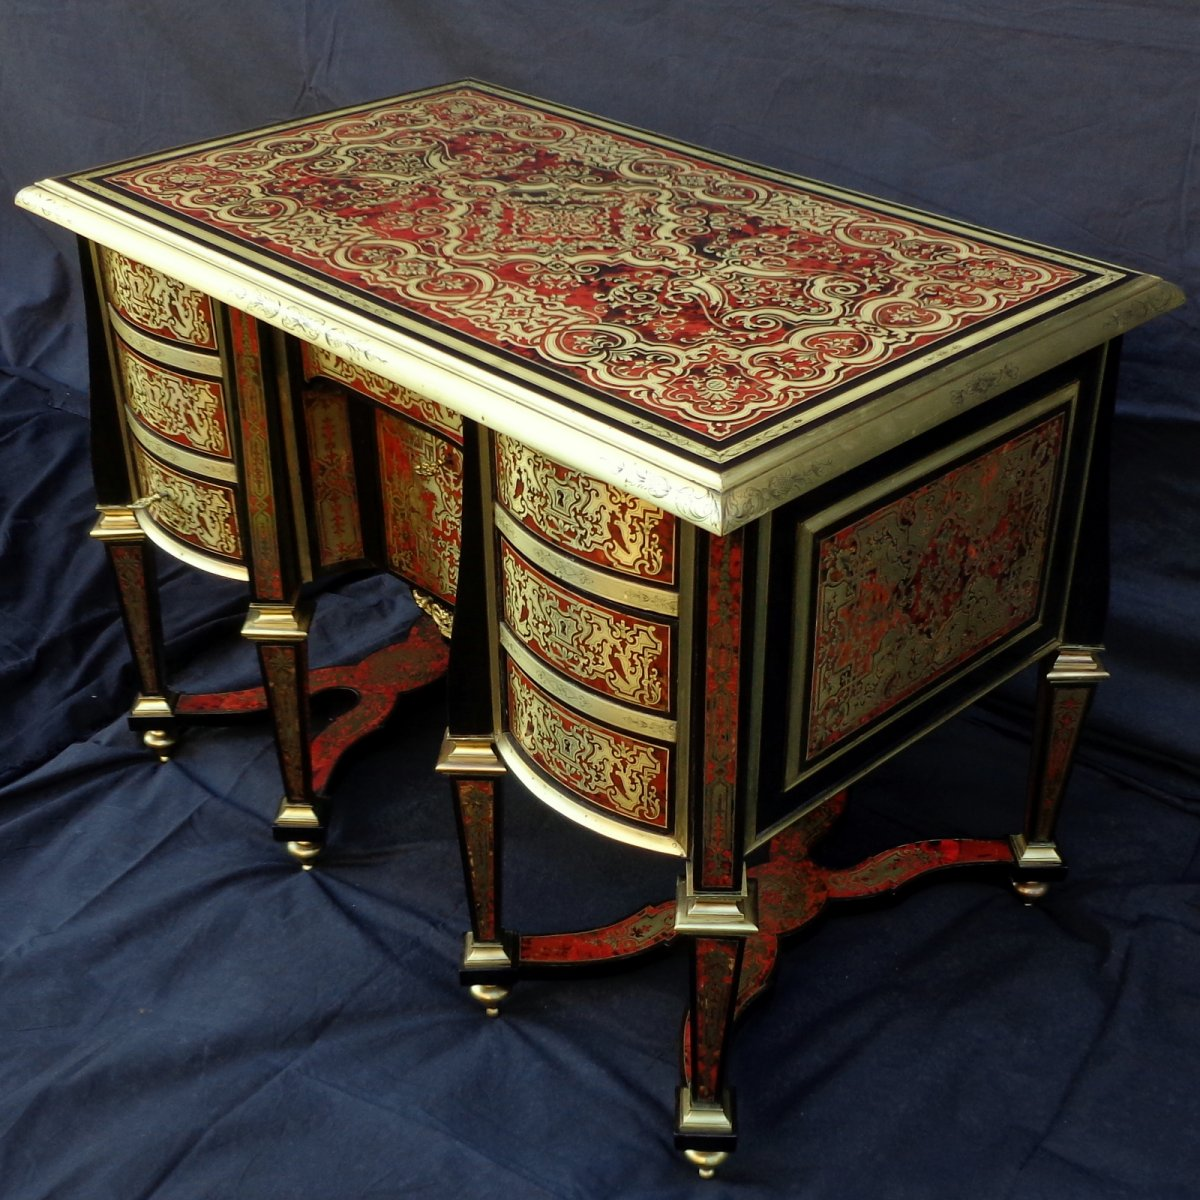 bureau mazarin en marqueterie boulle toutes faces d but xixe si cle. Black Bedroom Furniture Sets. Home Design Ideas